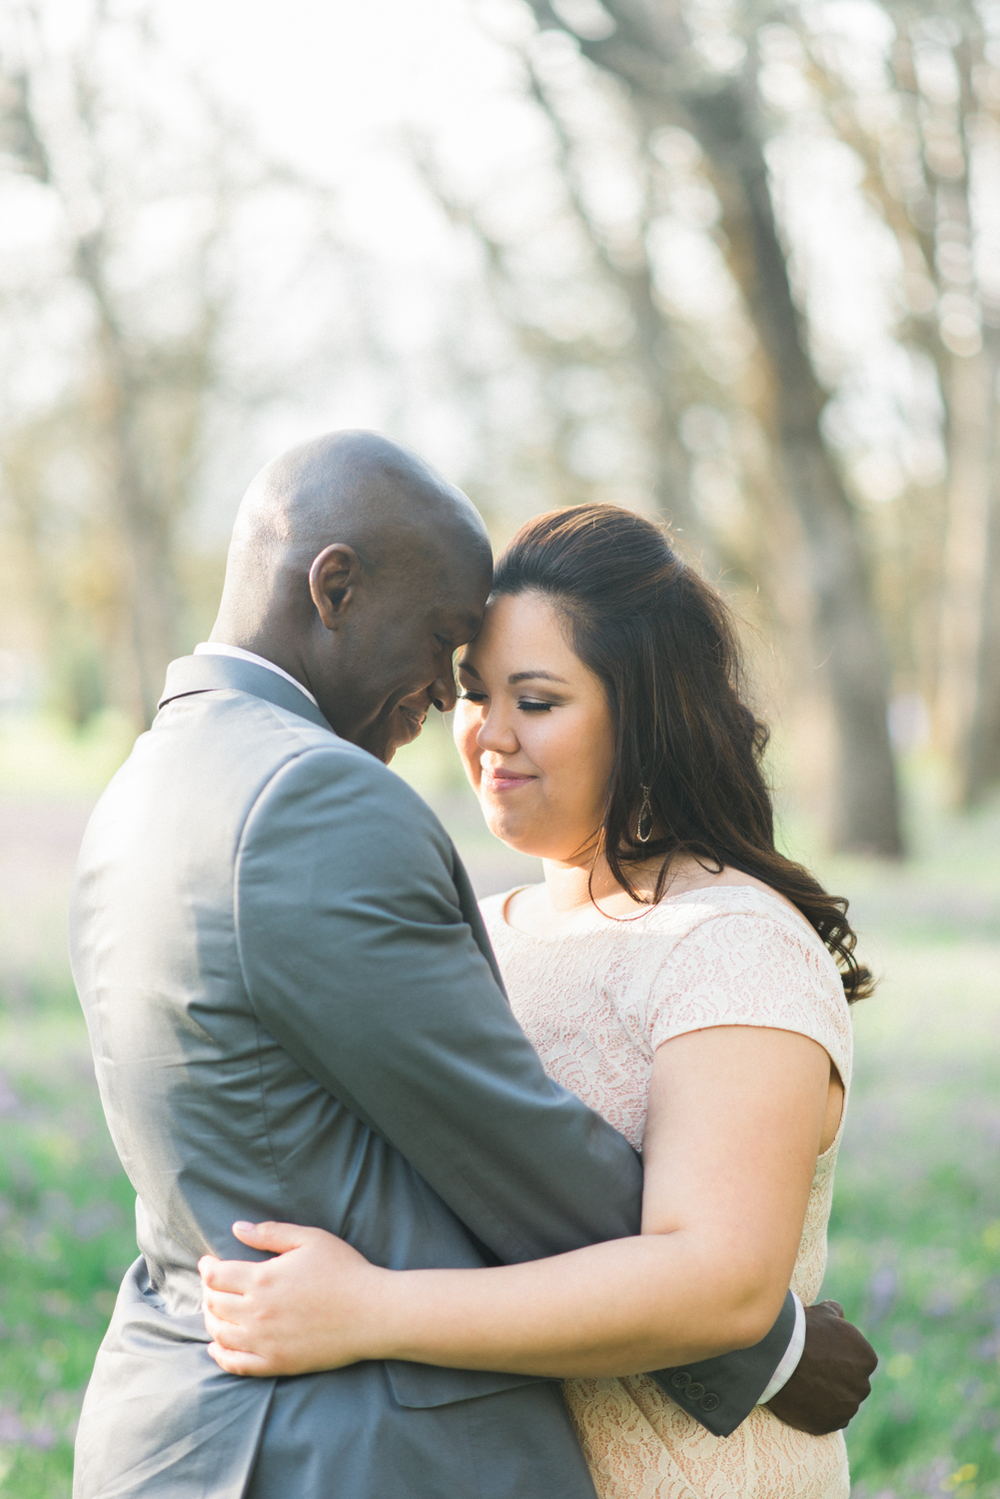 romantic-salem-engagement-photos-bush-park-shelley-marie-photo-6